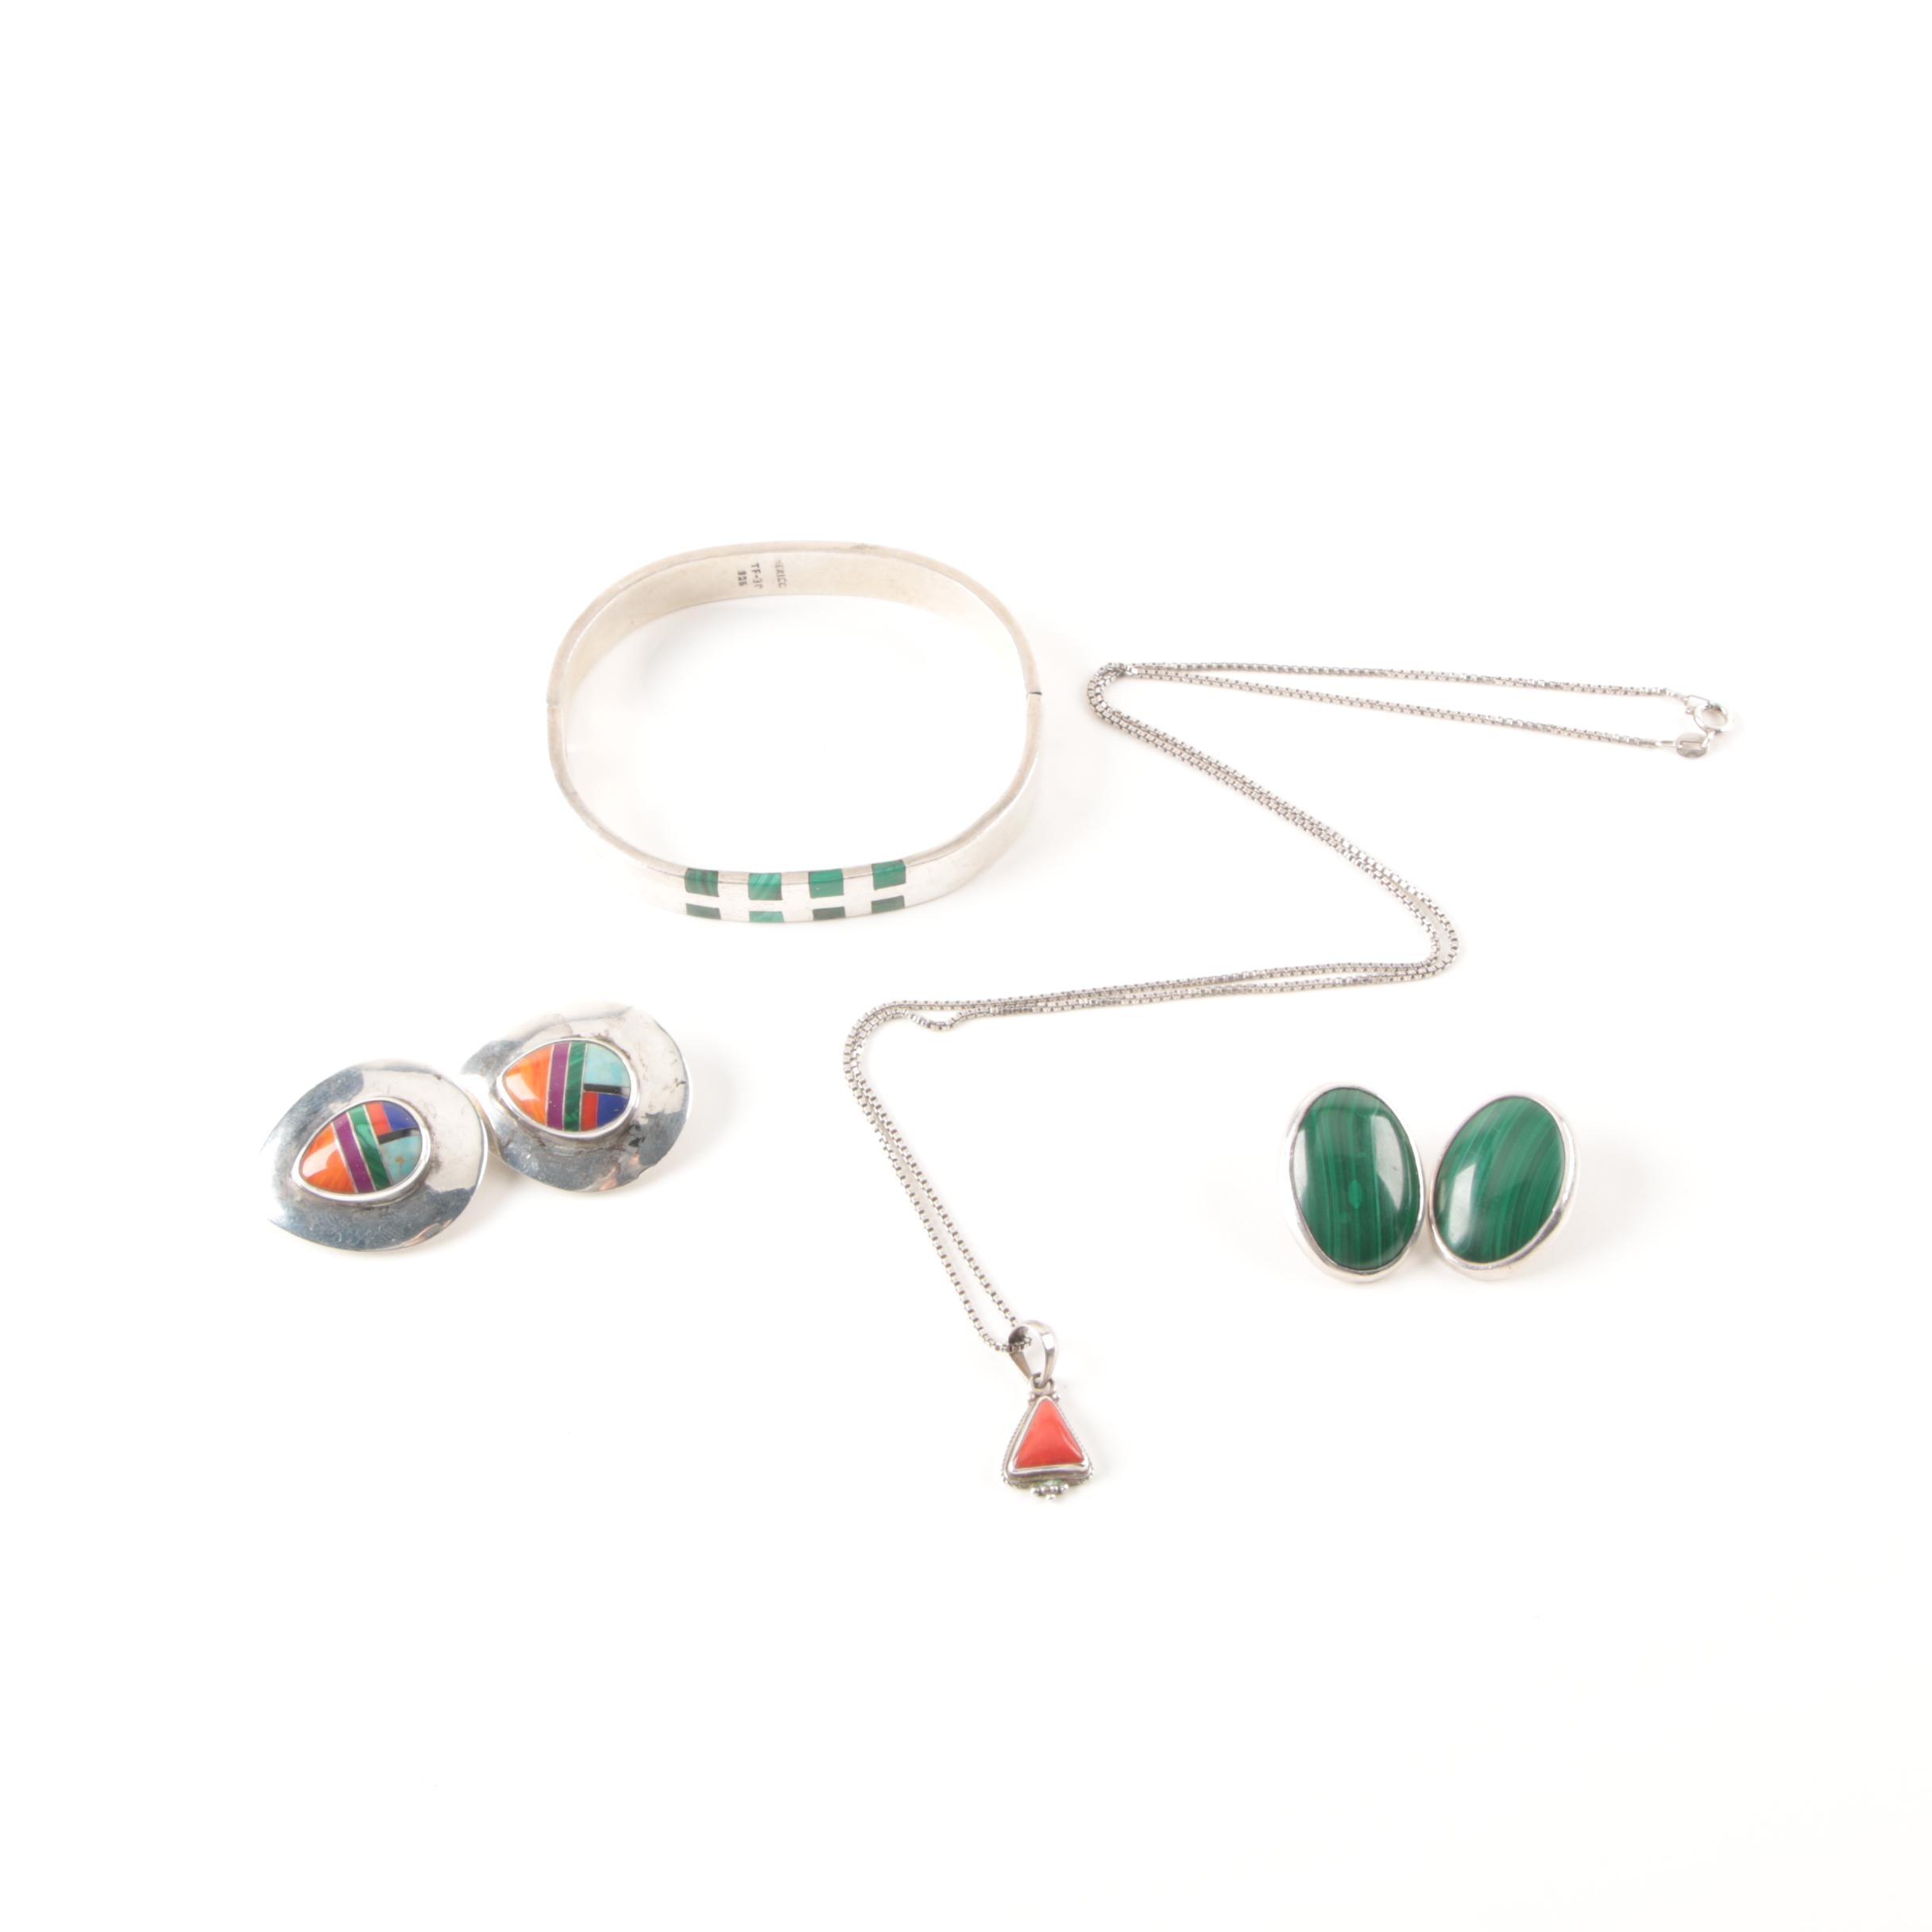 Southwest-Style Sterling Silver Jewelry with Stone Cabochons and Inlay